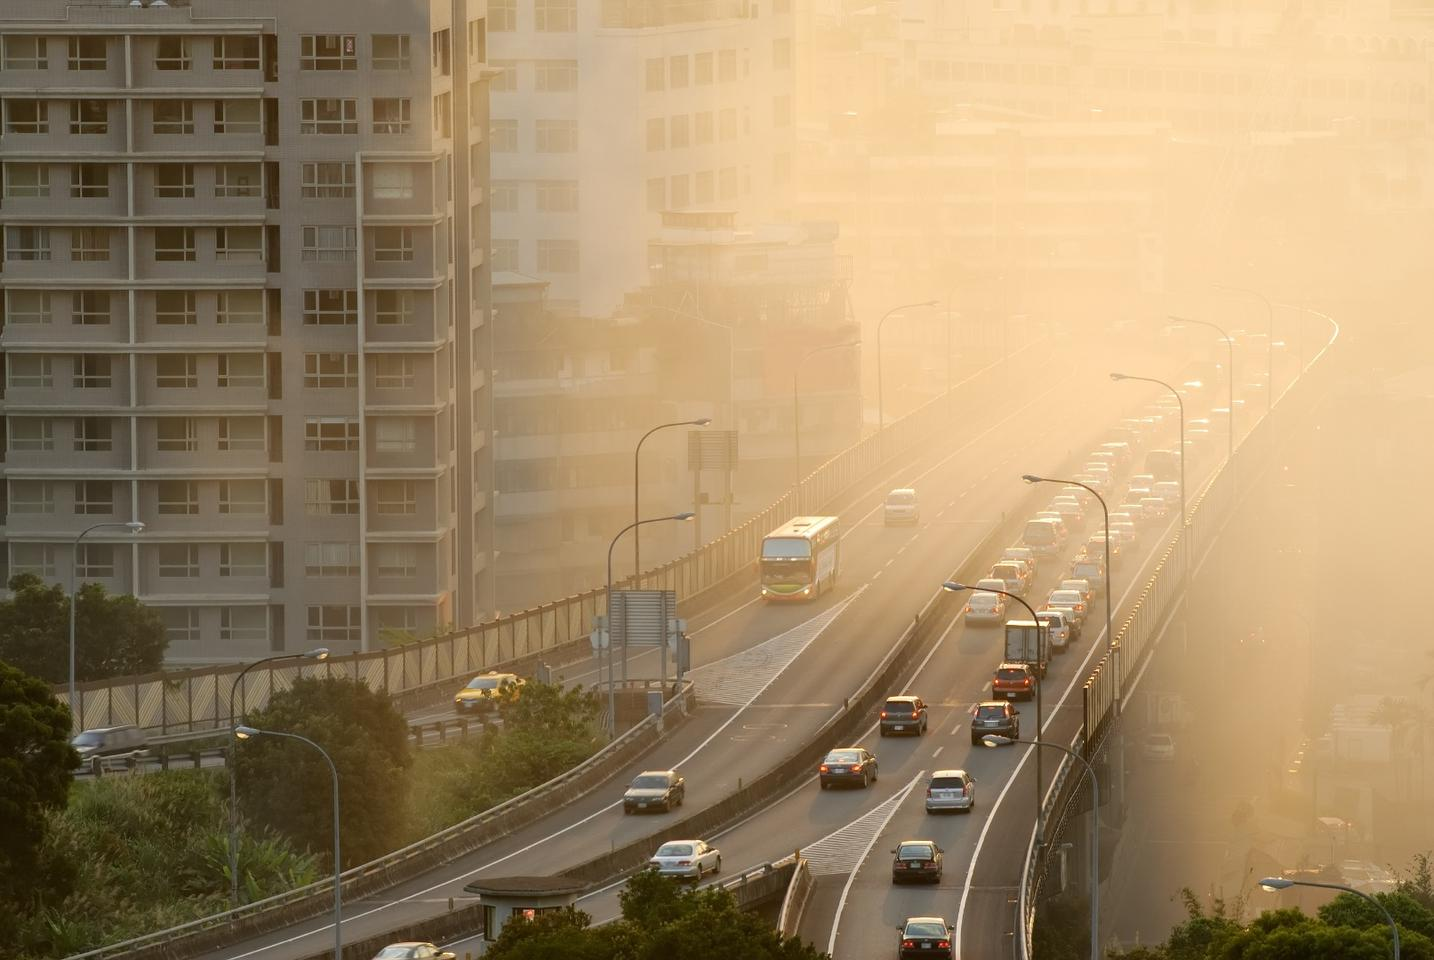 Without offering a causal conclusion, a new studysuggestsa strong observational association between air pollution and adolescent psychotic experiences